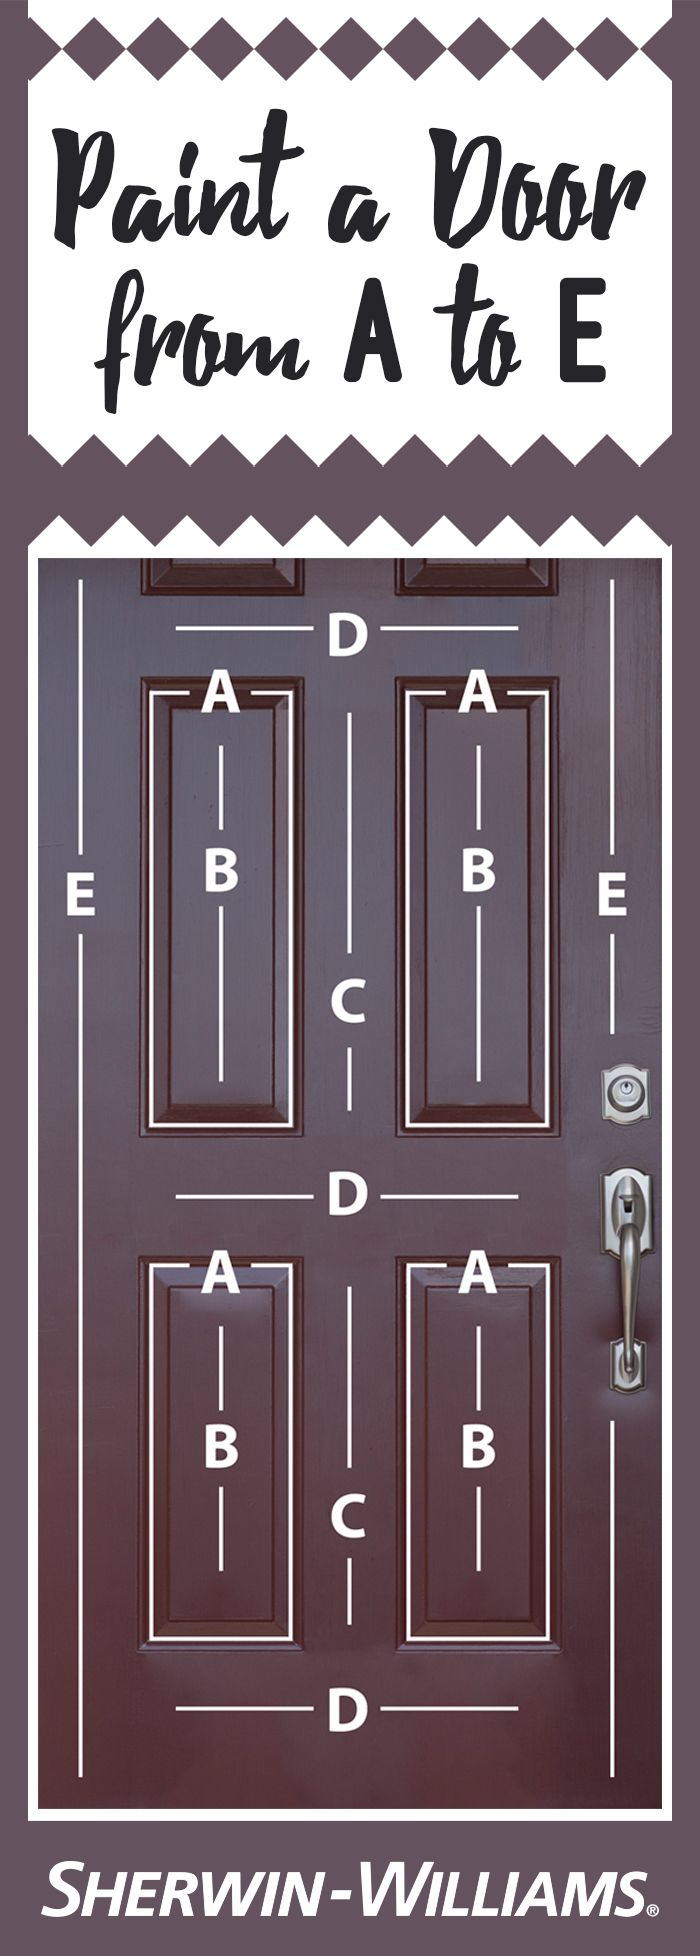 Looking for the best way to paint a beveled door? It's easy! Start with Area A, using an angled brush to paint all recessed areas. To prevent brush marks on the larger, smooth areas of your door (B-E), line the recessed areas with painter's tape. Next, move on to Area B, painting each subsequent area in alphabetical order. Use a brush or roller, making sure with each stroke that the fresh paint you are overlapping is still wet. This will help to avoid paint streaks.